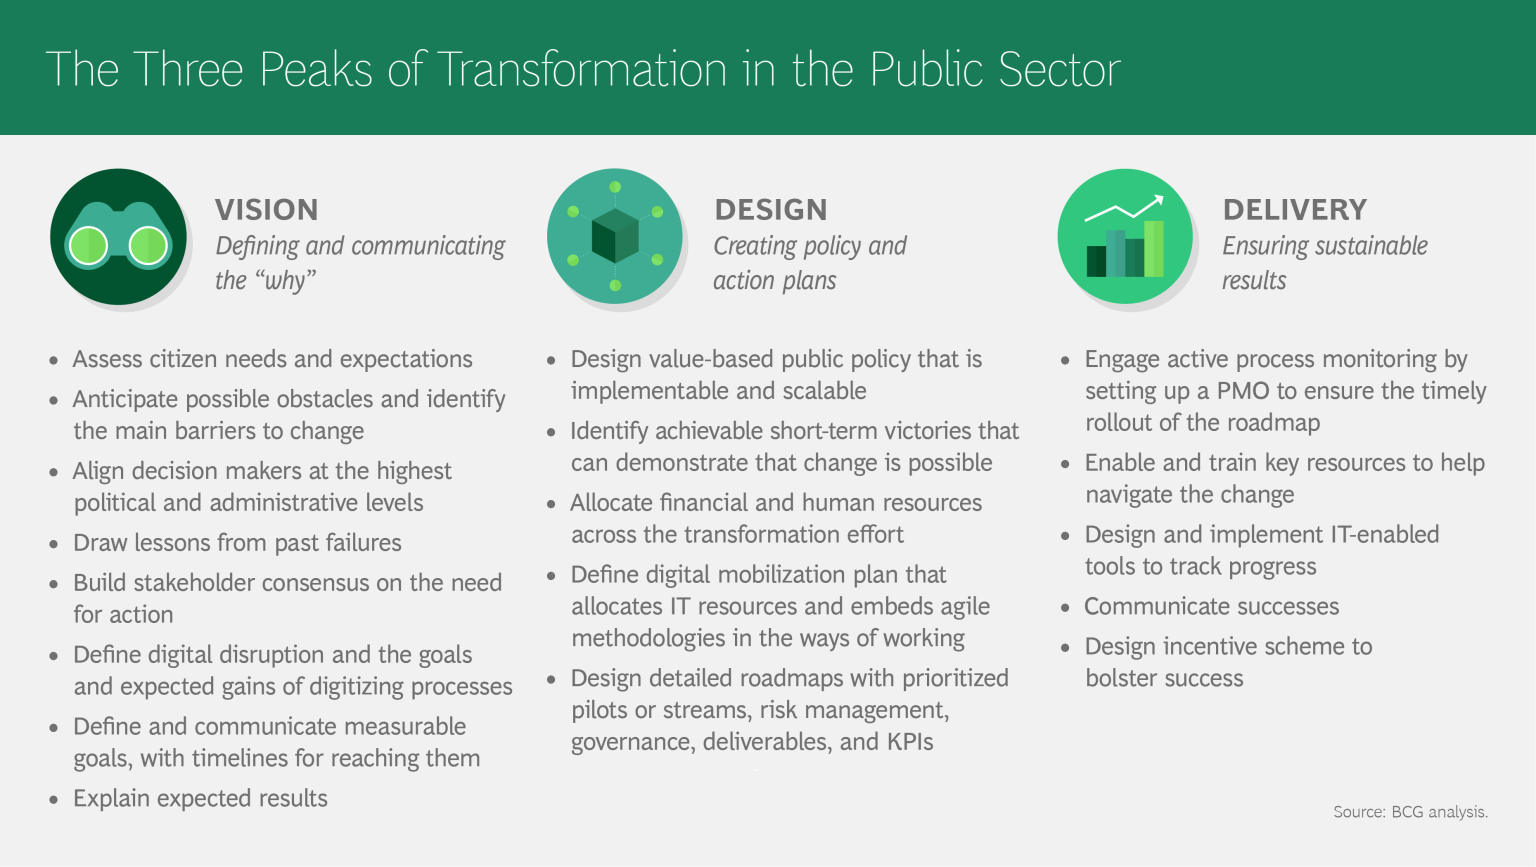 Bcg S Three Peaks Framework For Transformation In The Public Sector Guides Organizations Through The End To End Transfor With Images Public Public Policy Transformations